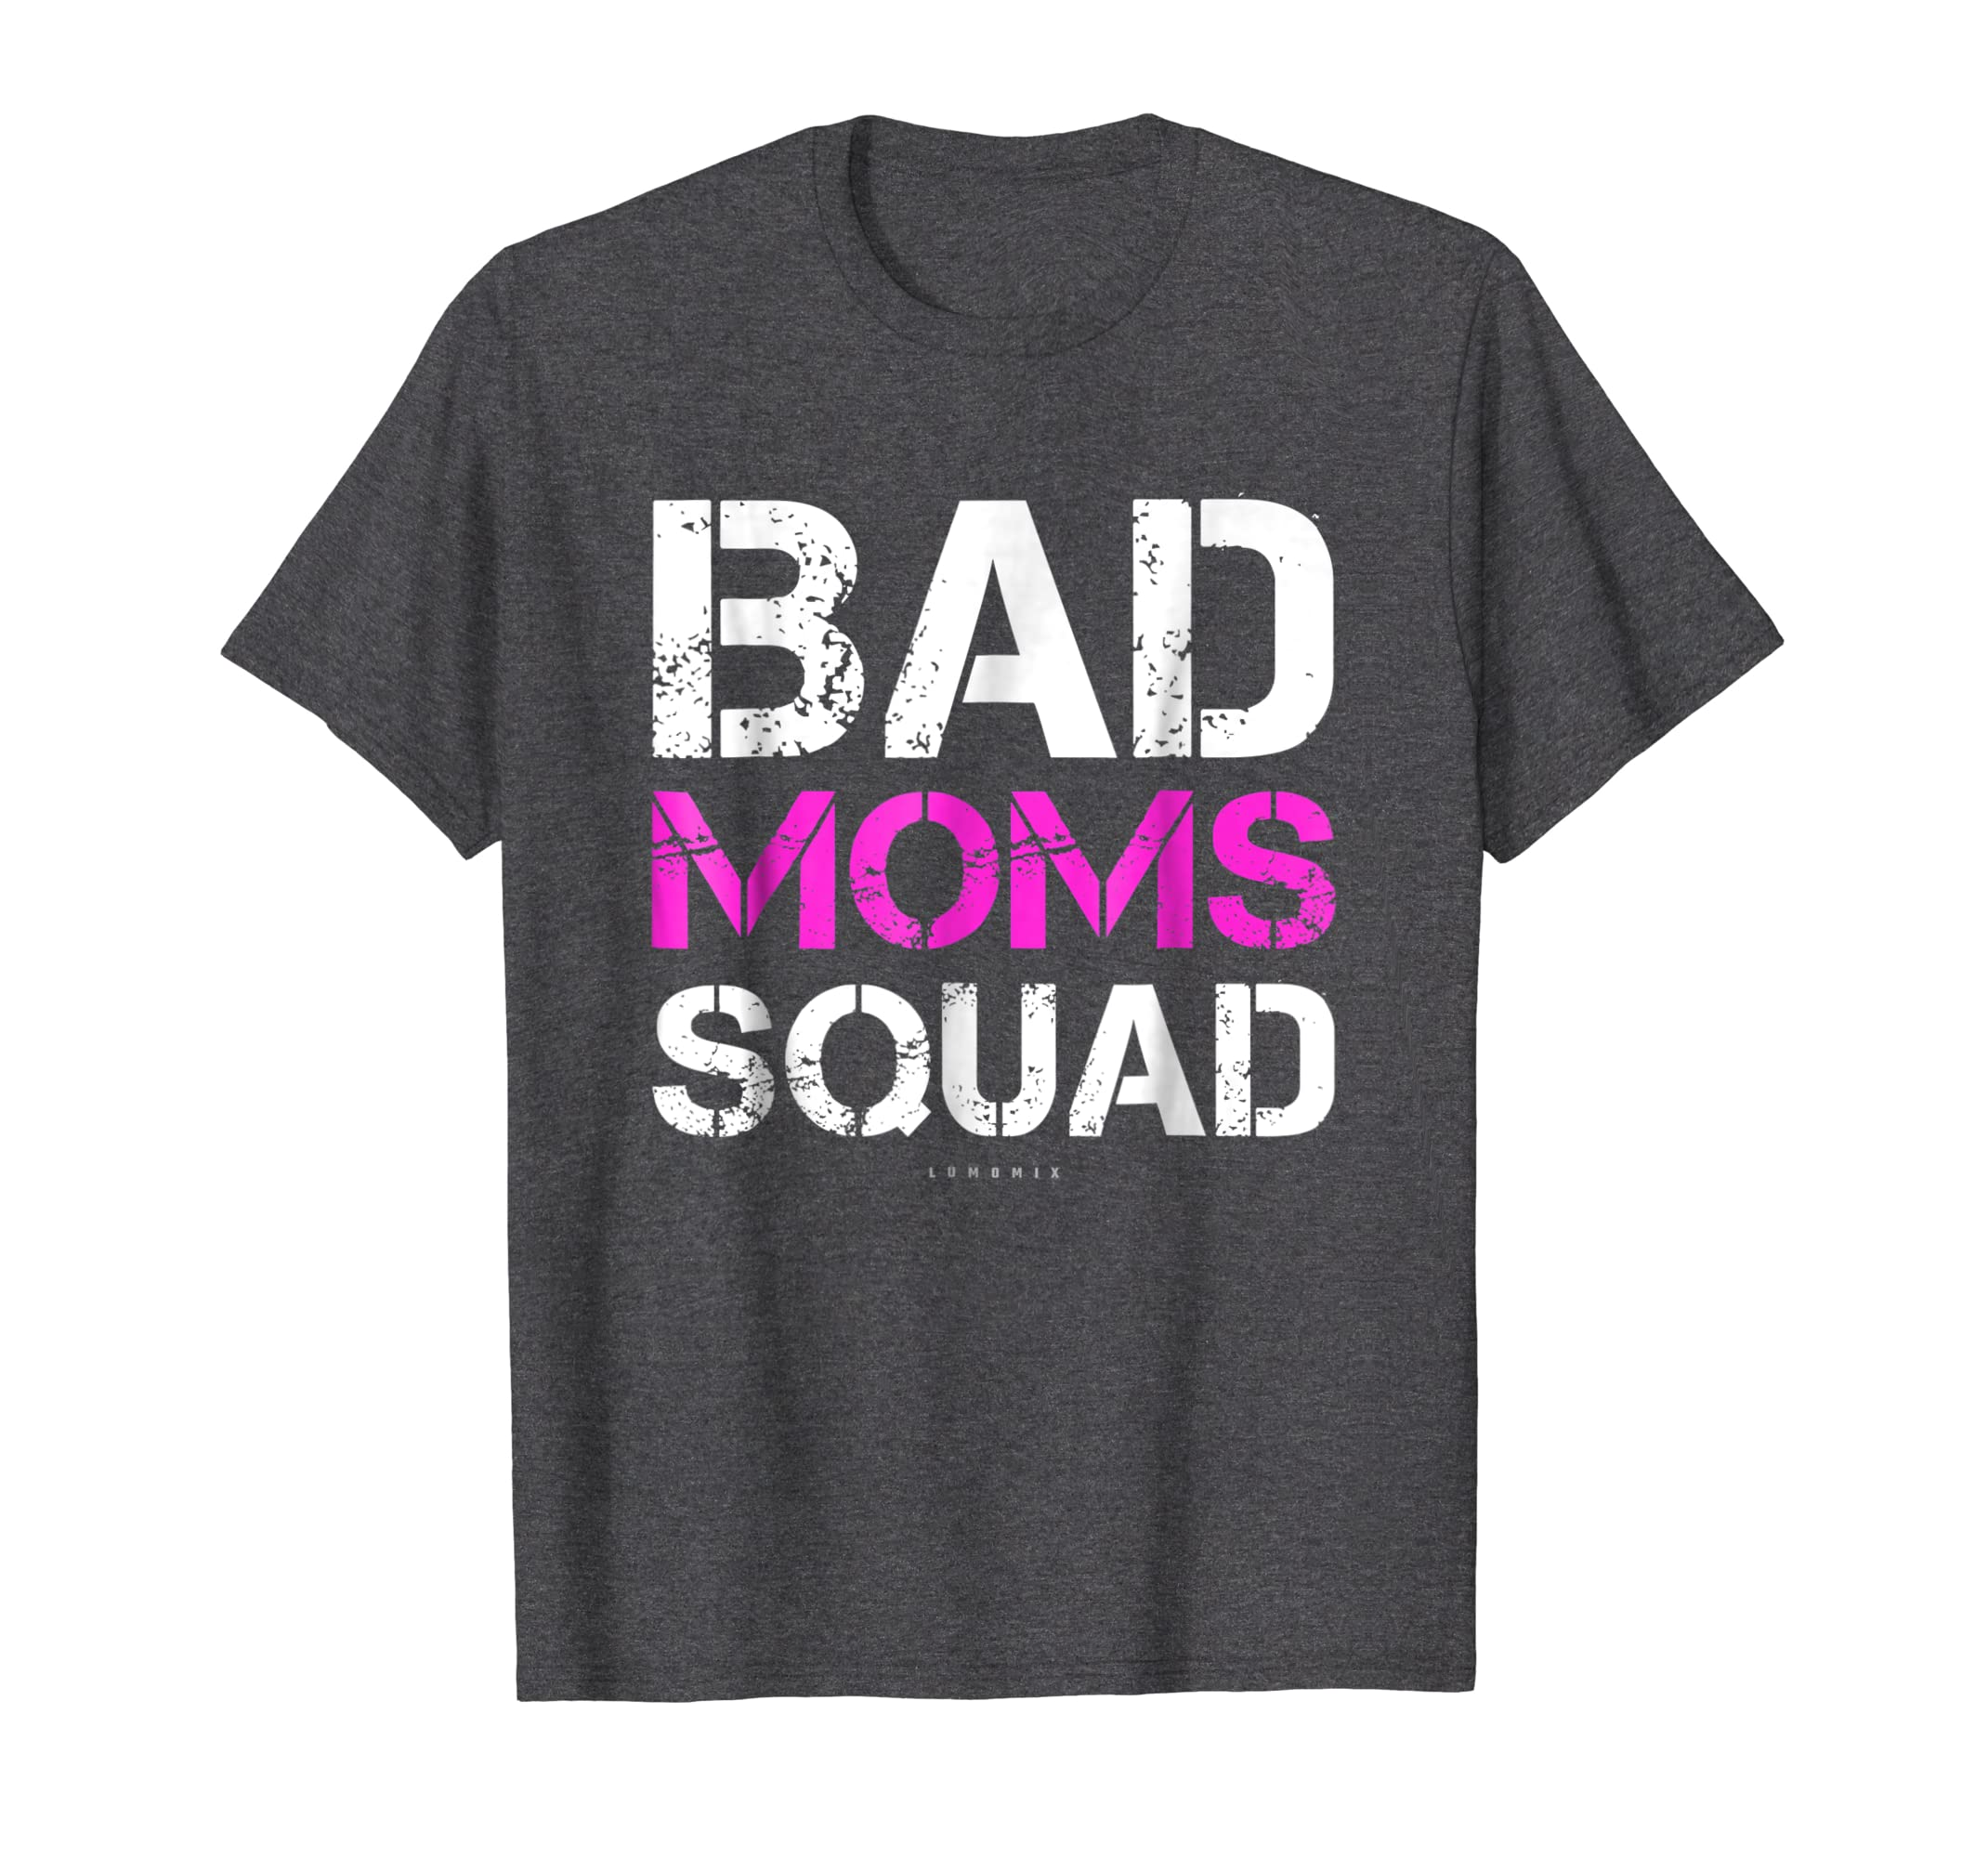 Funny Mothers Day Gift: Bad Moms Squad Tee. Funny Mom Shirts-Teehay